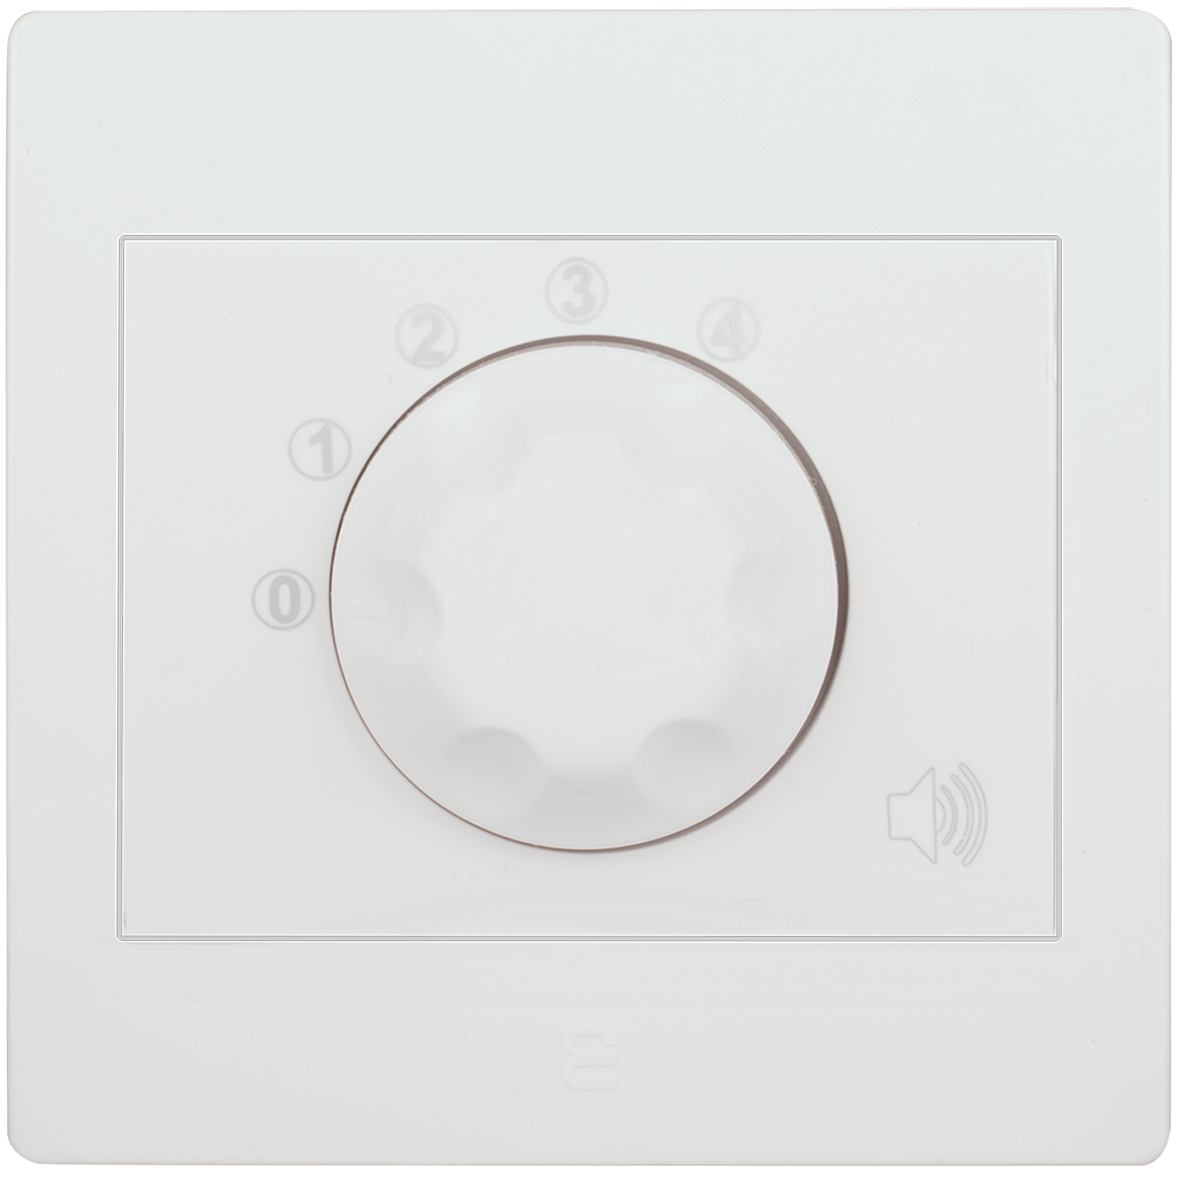 Audio dimmer